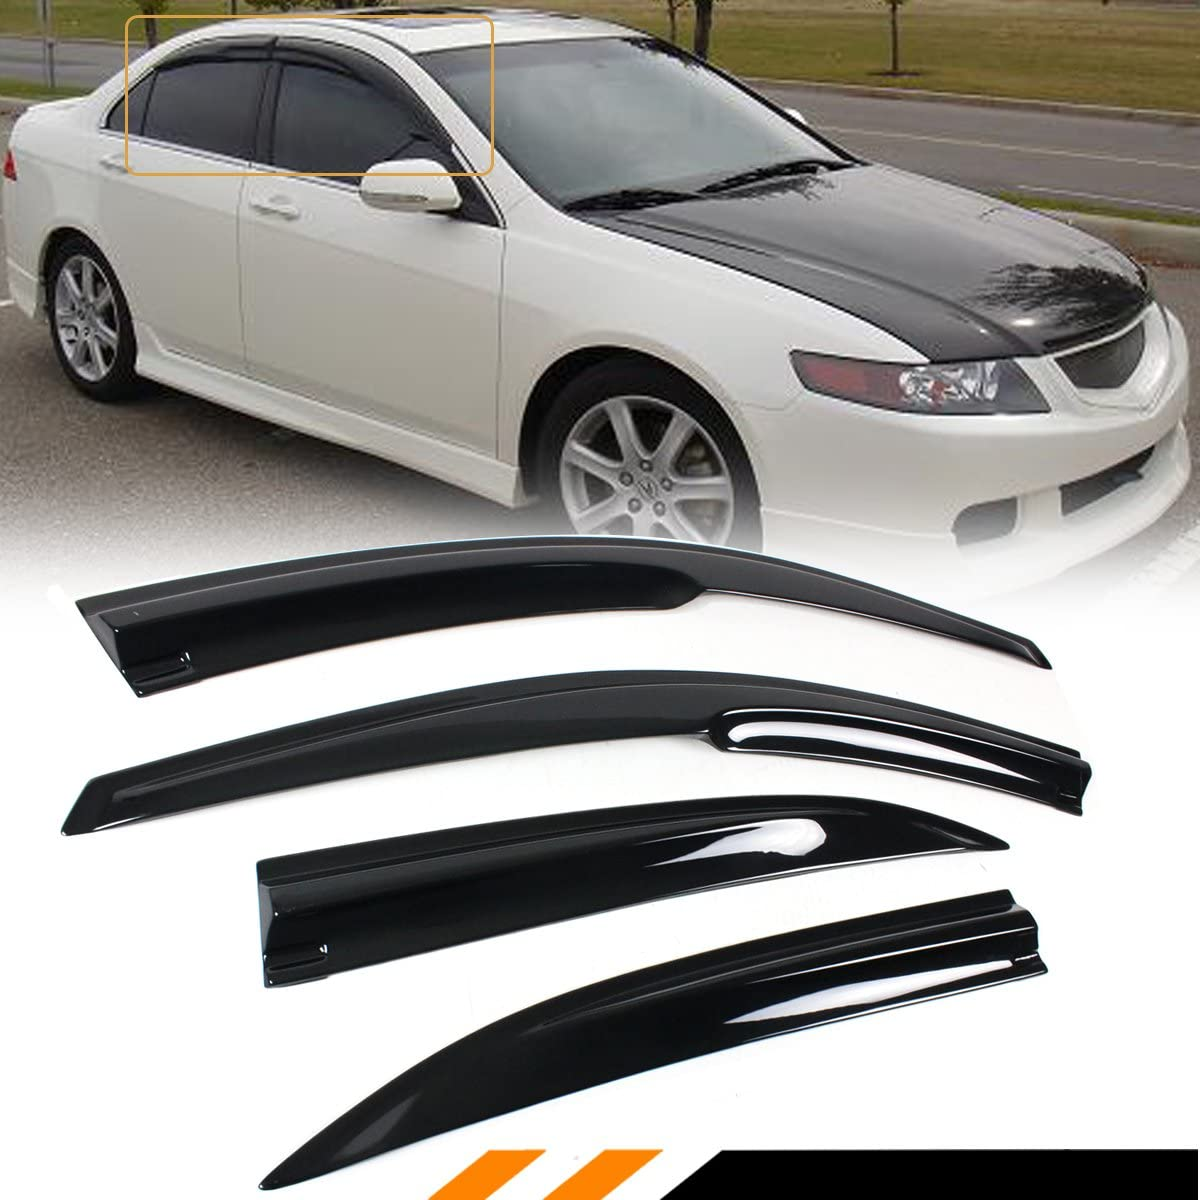 Cuztom Tuning Fits Max 78% OFF Recommended for 2004-2008 Acura 3D JDM CL8 Euro-R TSX Wav